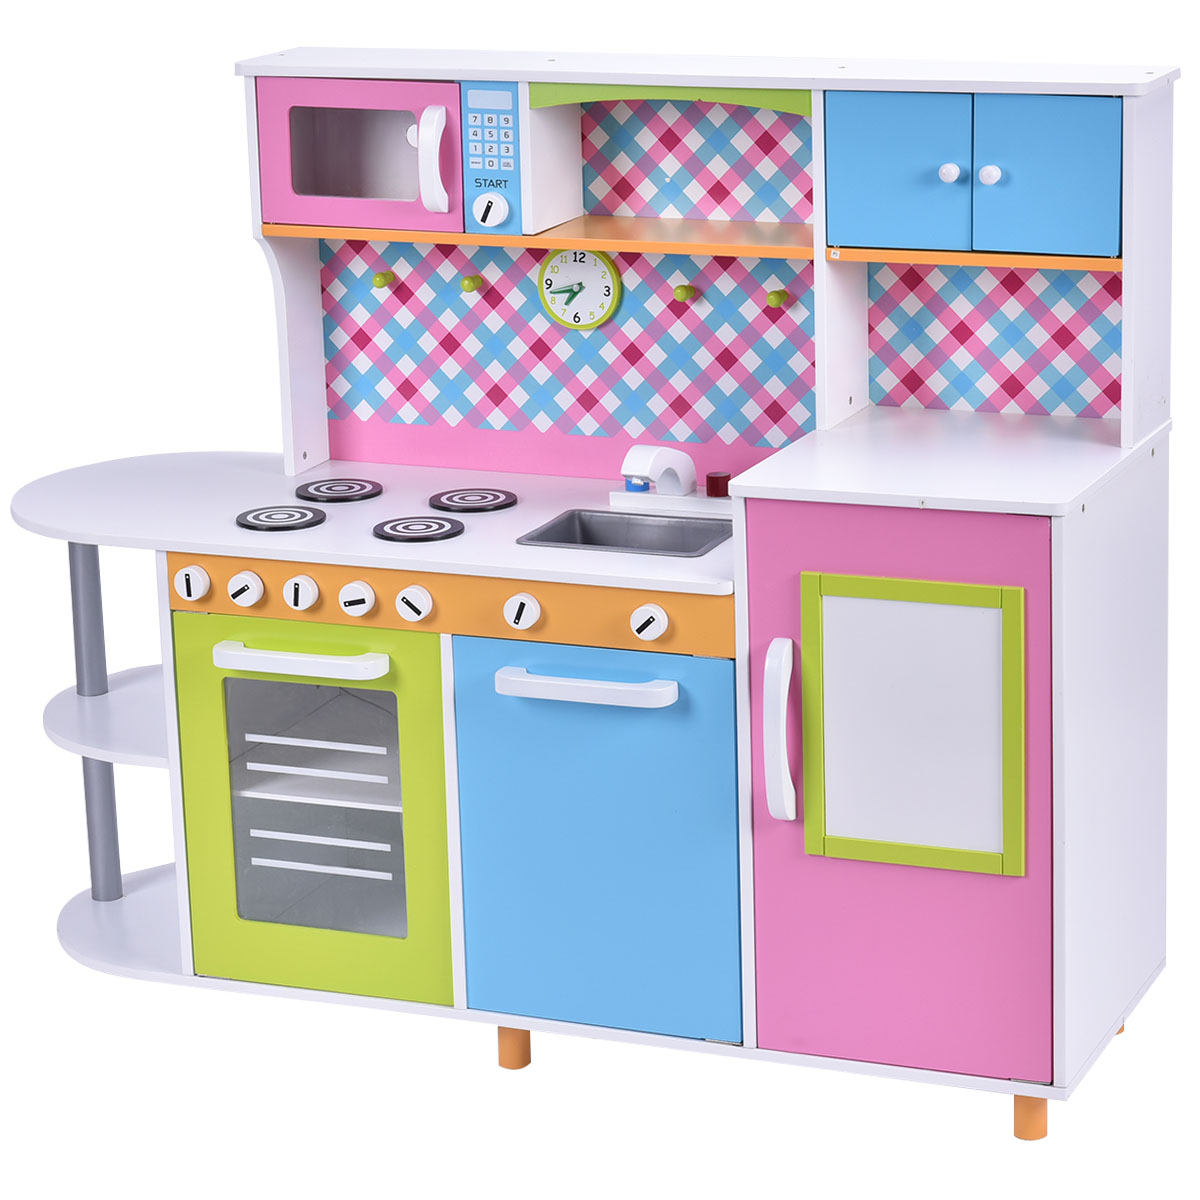 Costway New Wood Kitchen Toy Kids Cooking Pretend Play Set Toddler Wooden Playset Gift